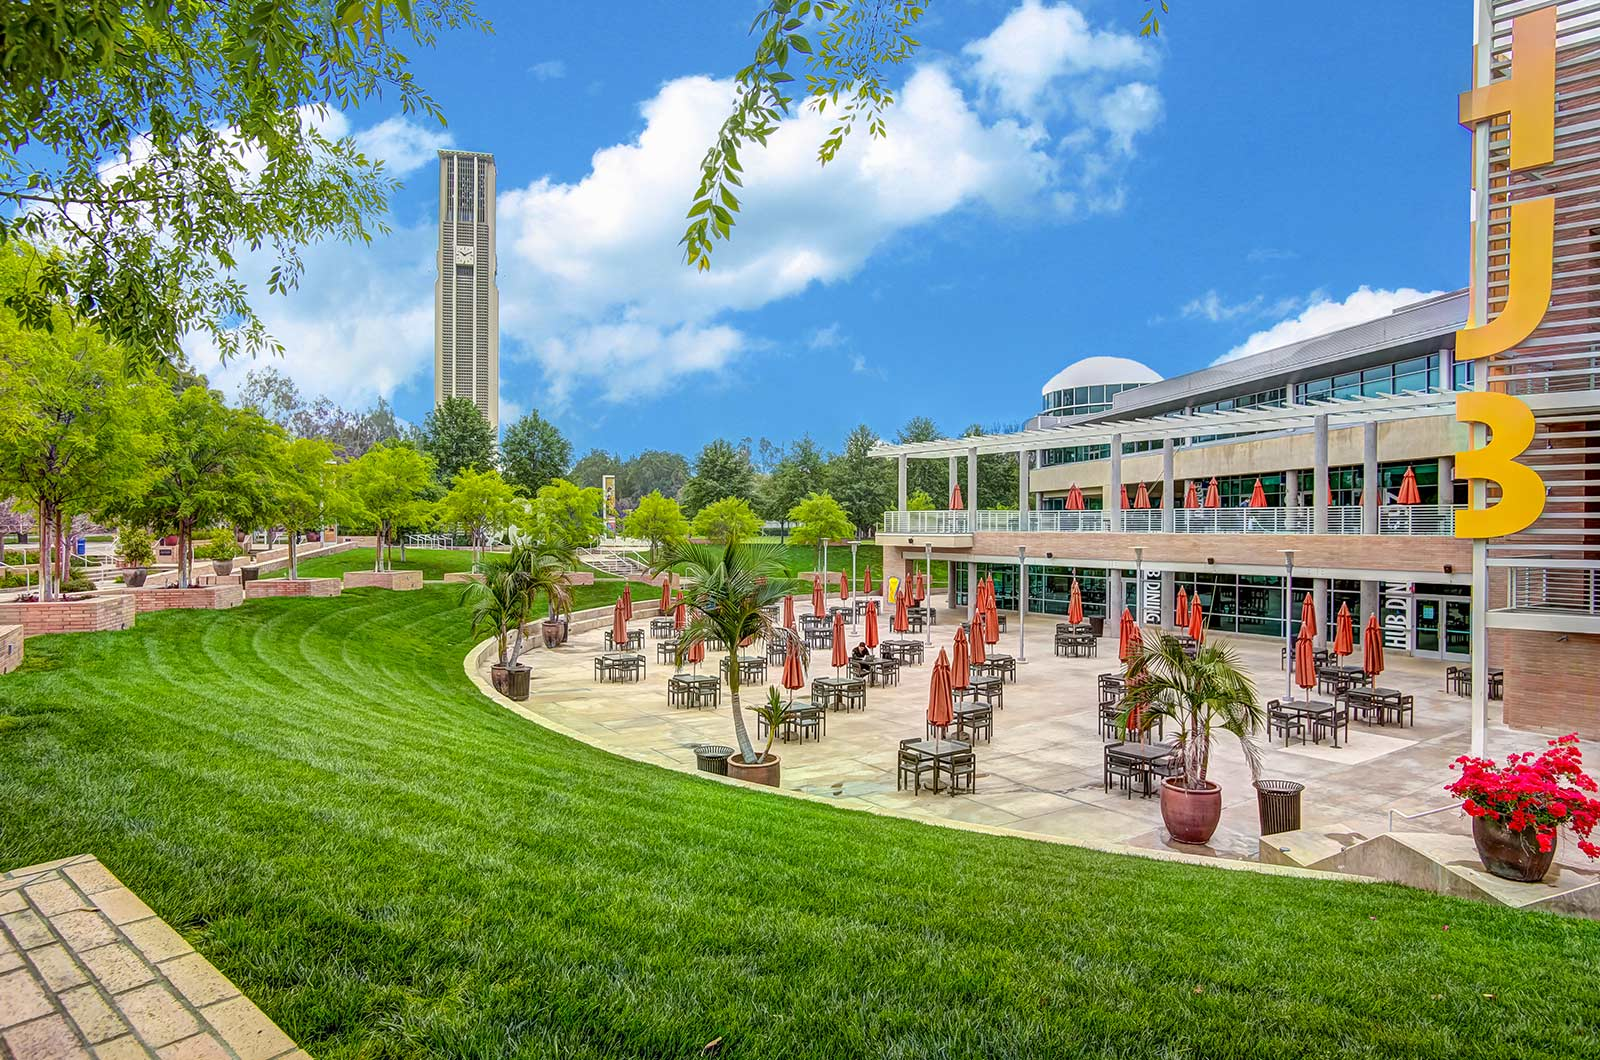 Outdoor-Courtyard-Lunch-Space-360-Tours-Virtual-Tour-Company-College-Vitual-Tours-Virtual-Tours-For-College